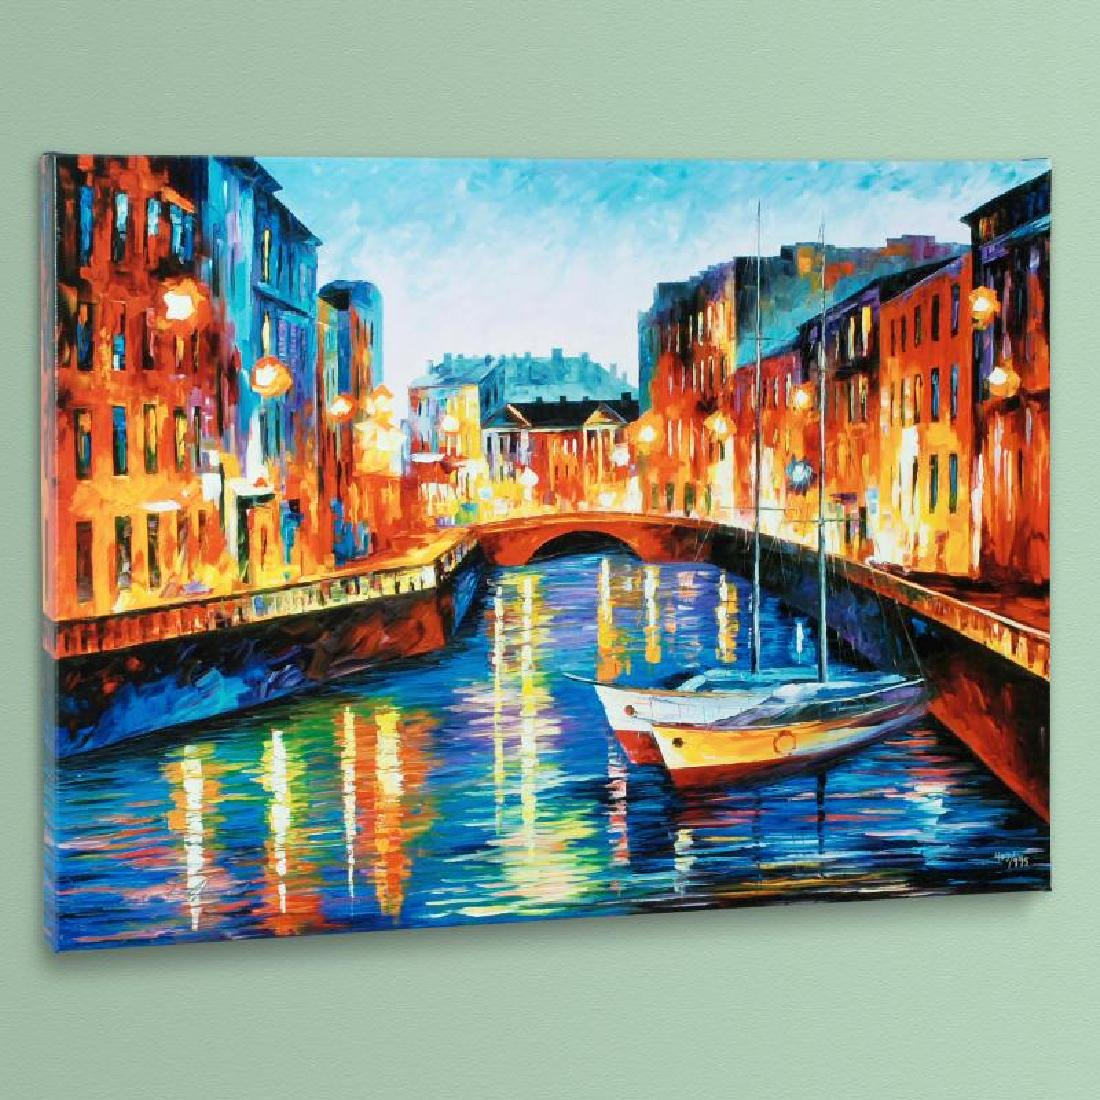 Evening River LIMITED EDITION Giclee on Canvas by